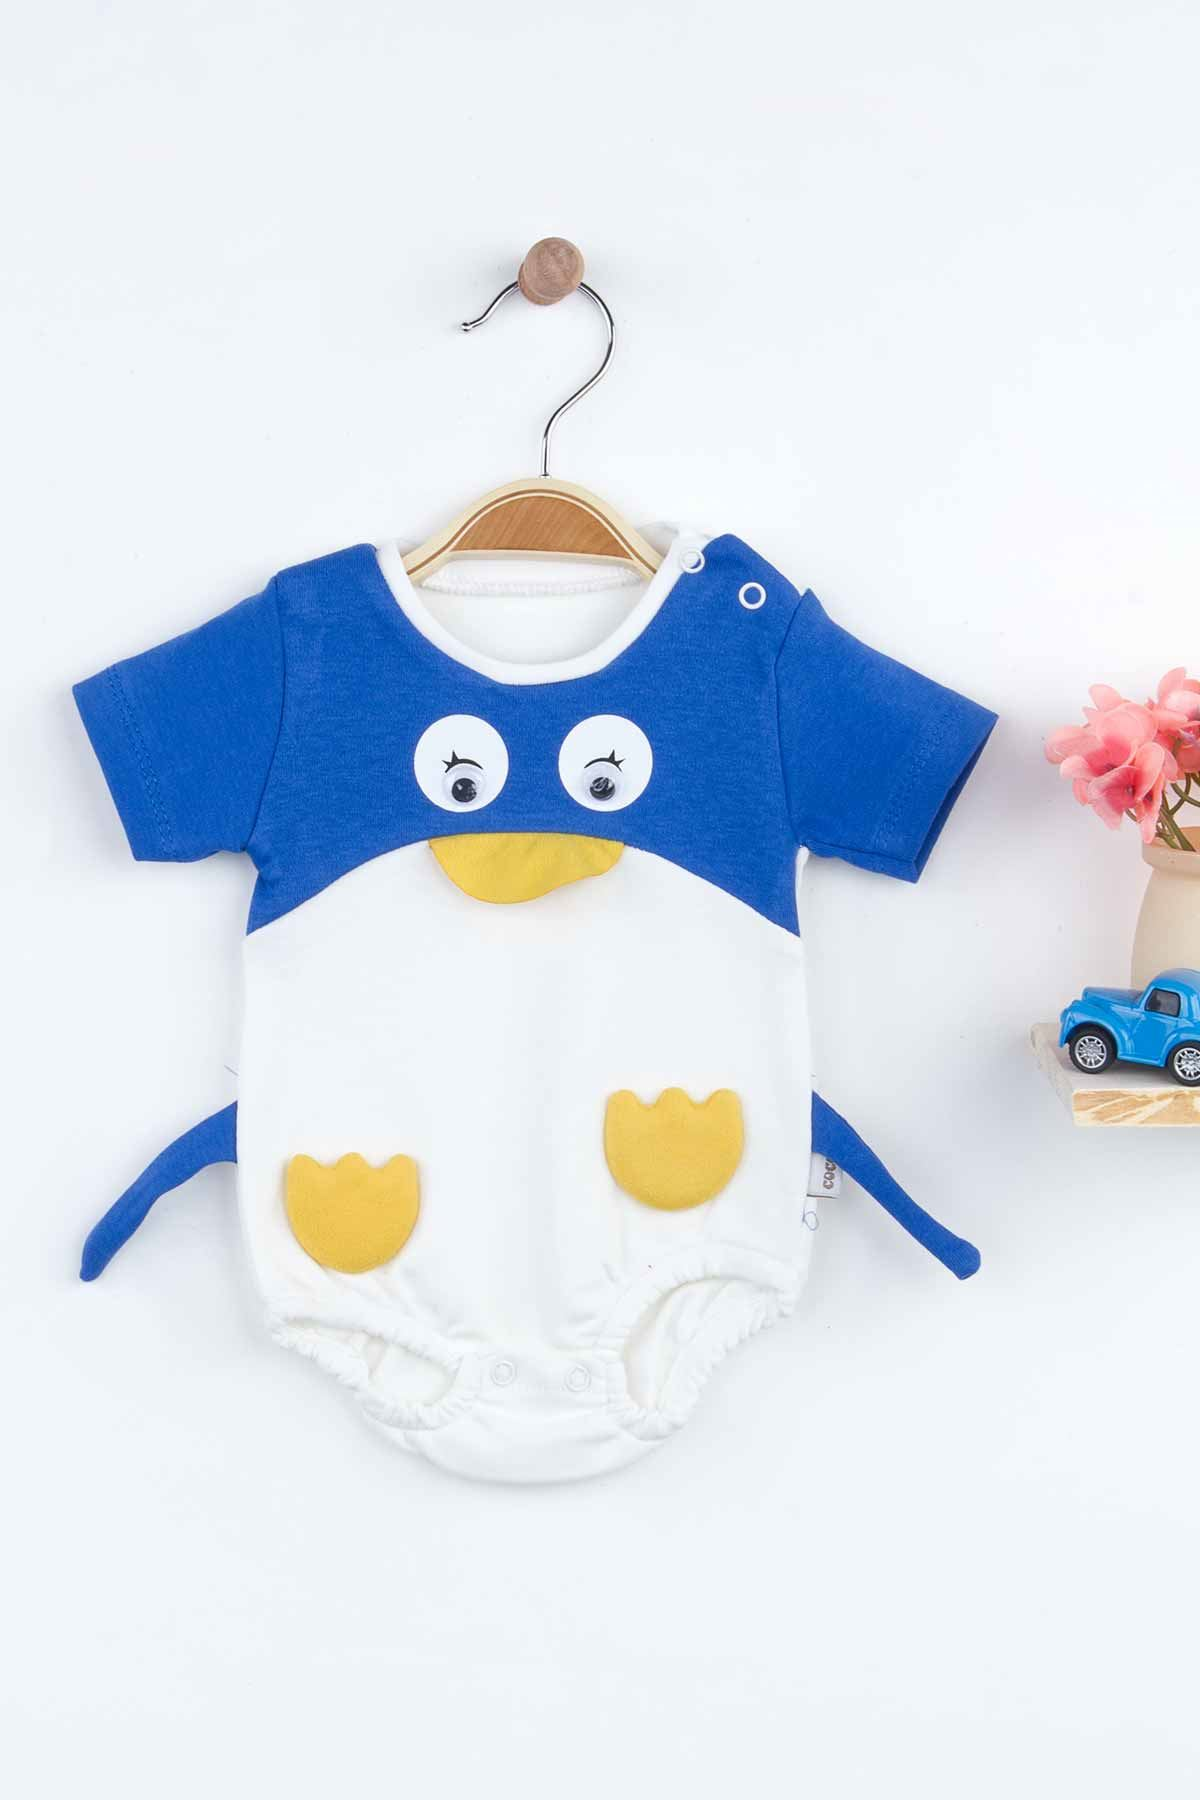 Blue Baby Boy Rompers Summer Fashion 2021 New Season Style Penguin Babies Clothes Outfit Cotton Comfortable Underwear for Boys Baby